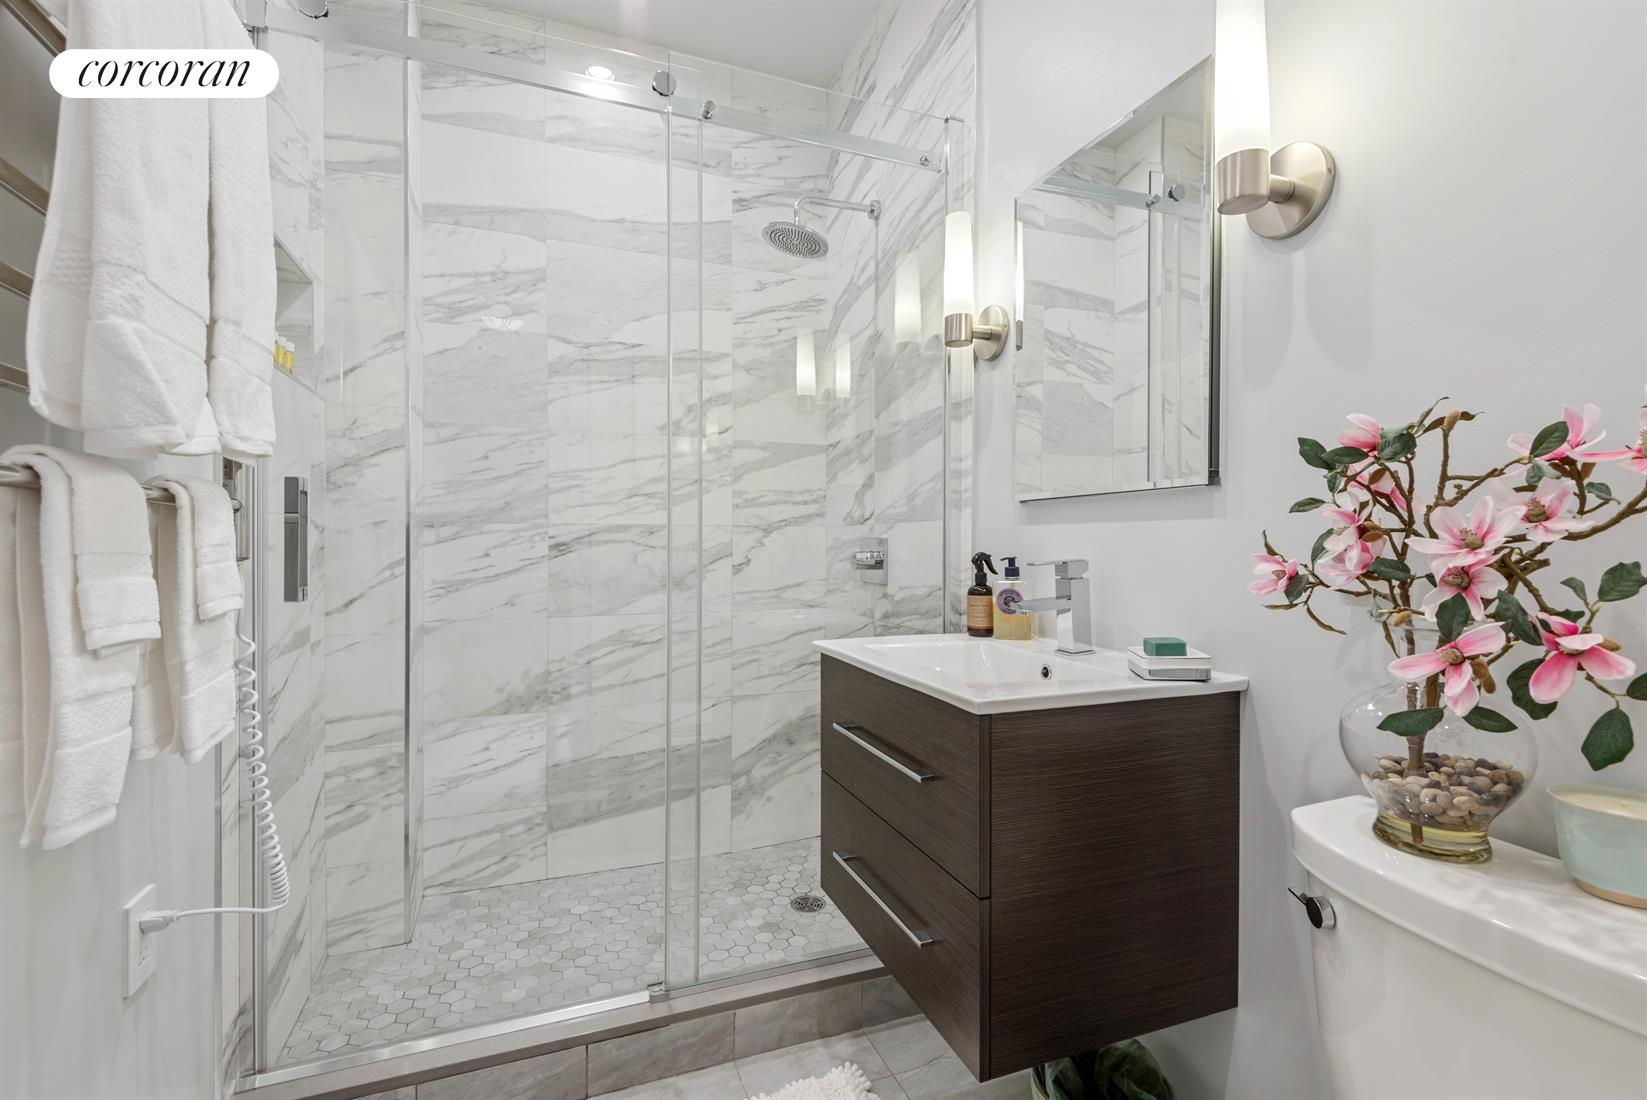 Apartment for sale at 159 Madison Avenue, Apt 7G